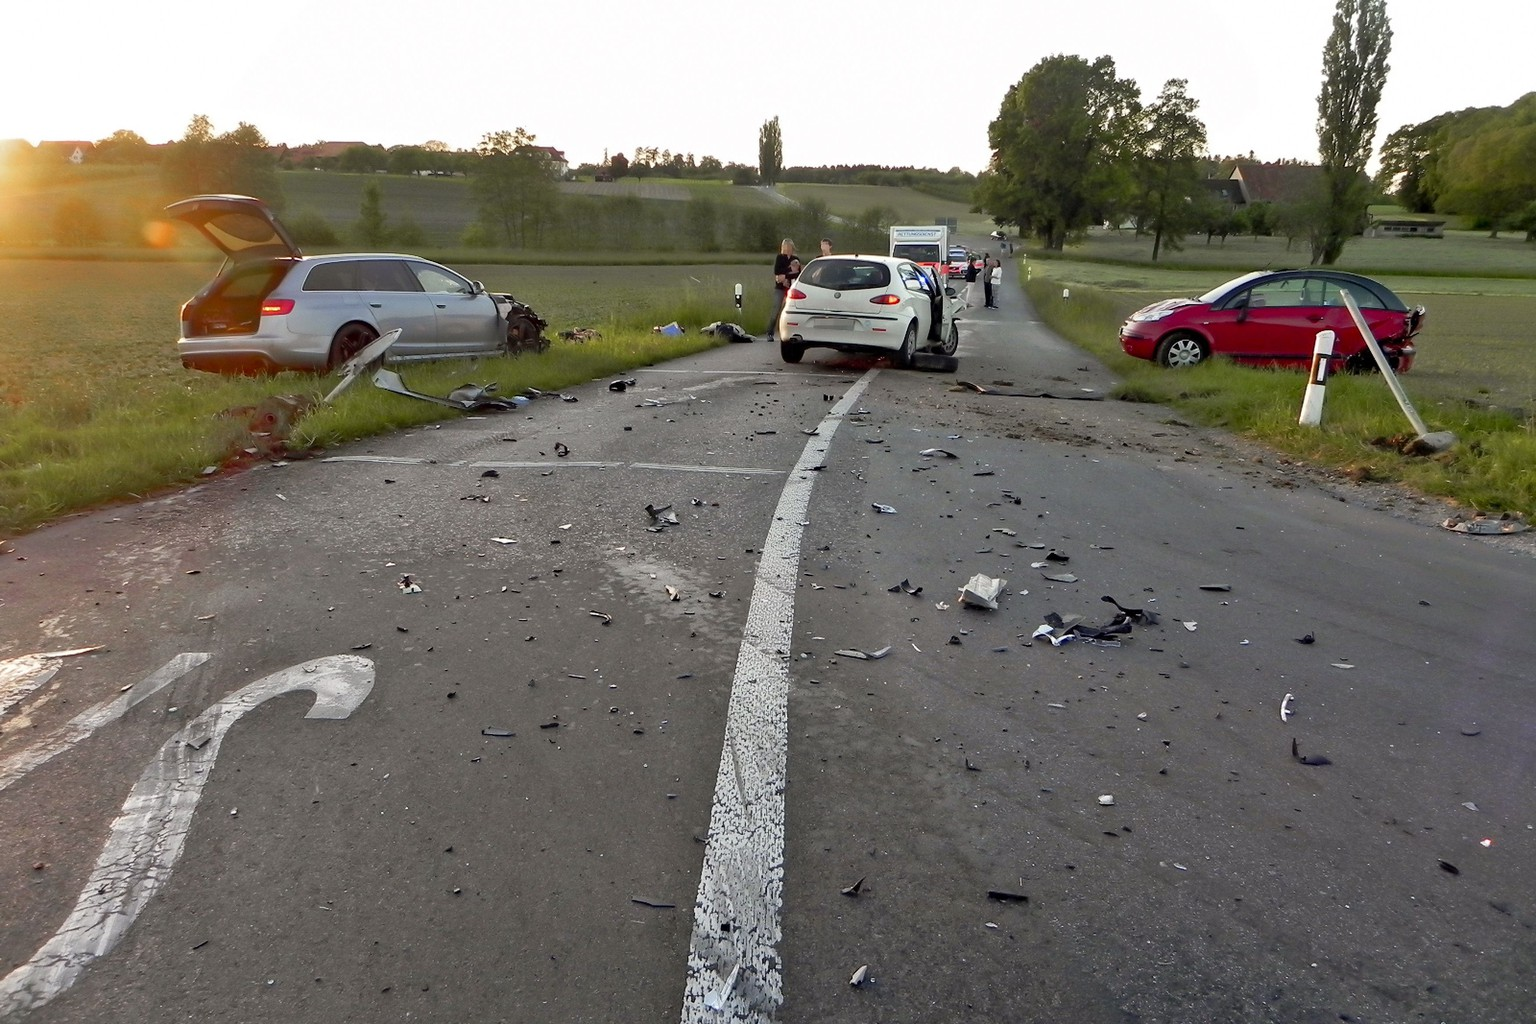 This picture made available by the Police of the Swiss Canton of Thurgau shows the site of a car crash on May 19, 2014 in Mattwil. Germany's only Tour de France winner Jan Ullrich has been involved in a road accident that injured two people in Switzerland, his adopted home, a newspaper reported. Blick said Ullrich was categorical that alcohol was not to blame for the crash, which occurred on Monday night outside the village of Mattwil in northern Switzerland. Police in the Thurgau region where Mattwil is located said in a statement that the man responsible for the crash failed a breathalyser test and was stripped of his driving license on the spot.  AFP PHOTO / HANDOUT / KANTONSPOLIZEI THURGAU